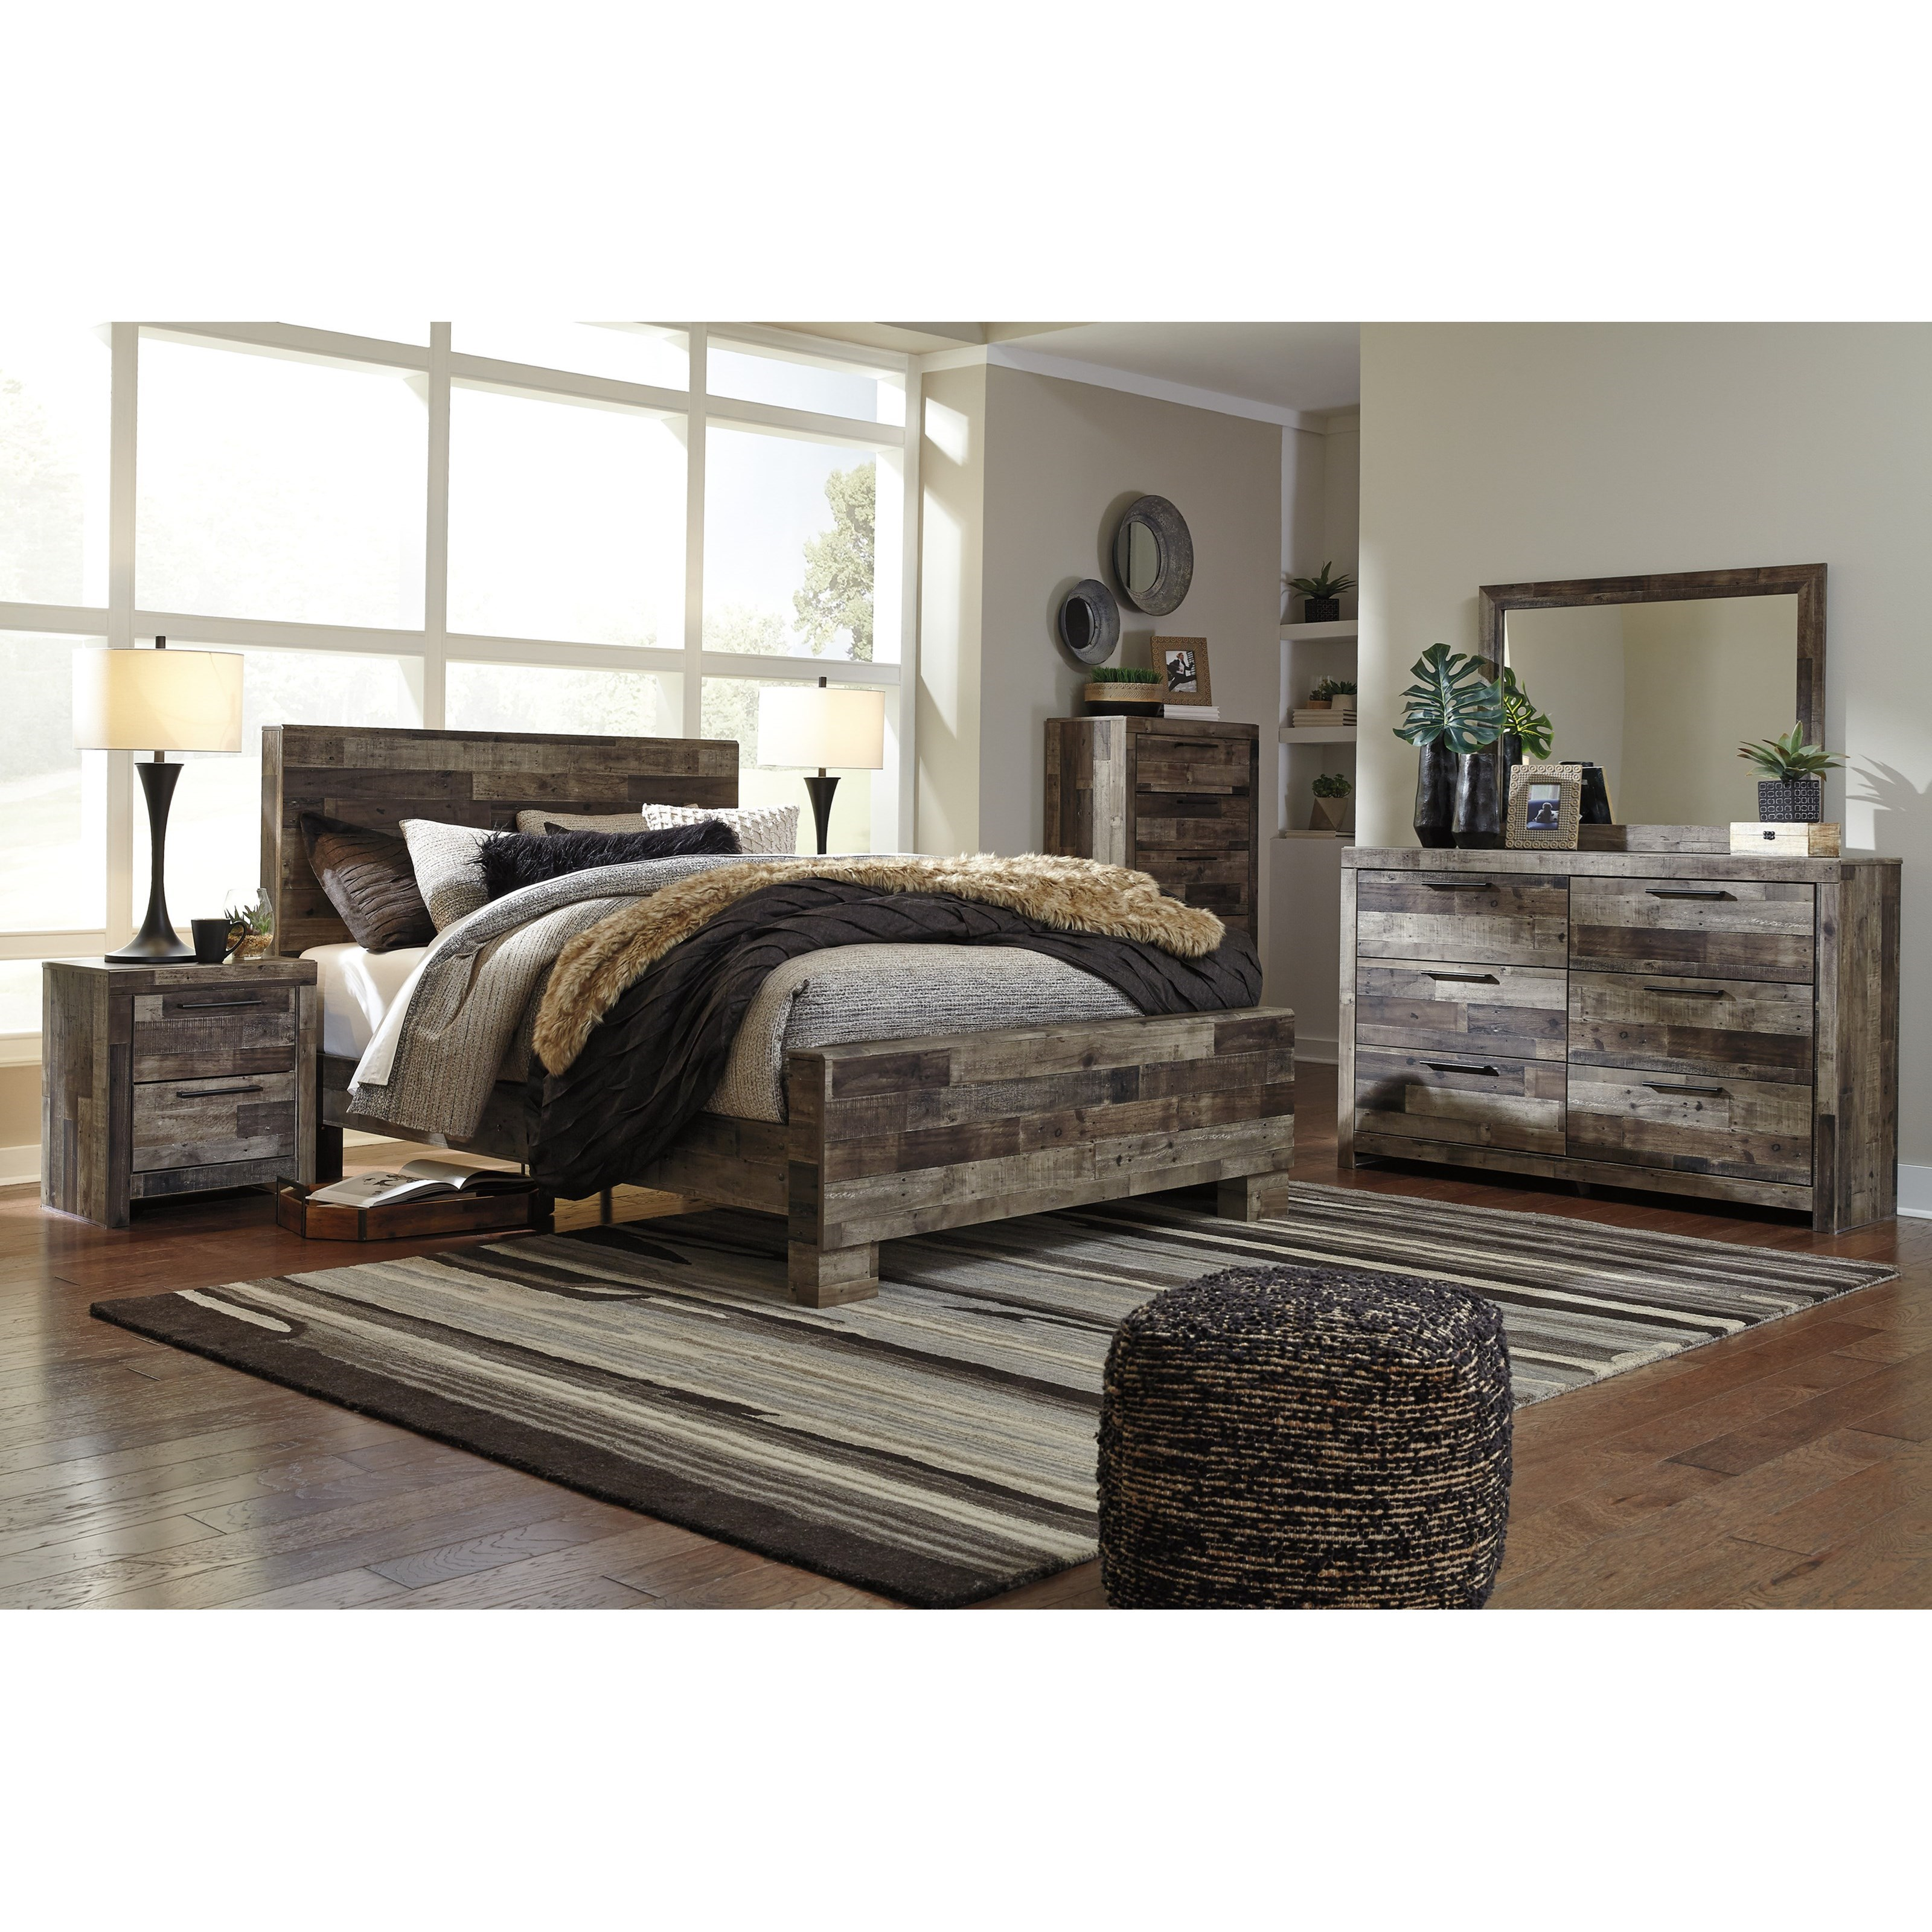 Derekson Full Bedroom Group by Benchcraft at Beck's Furniture